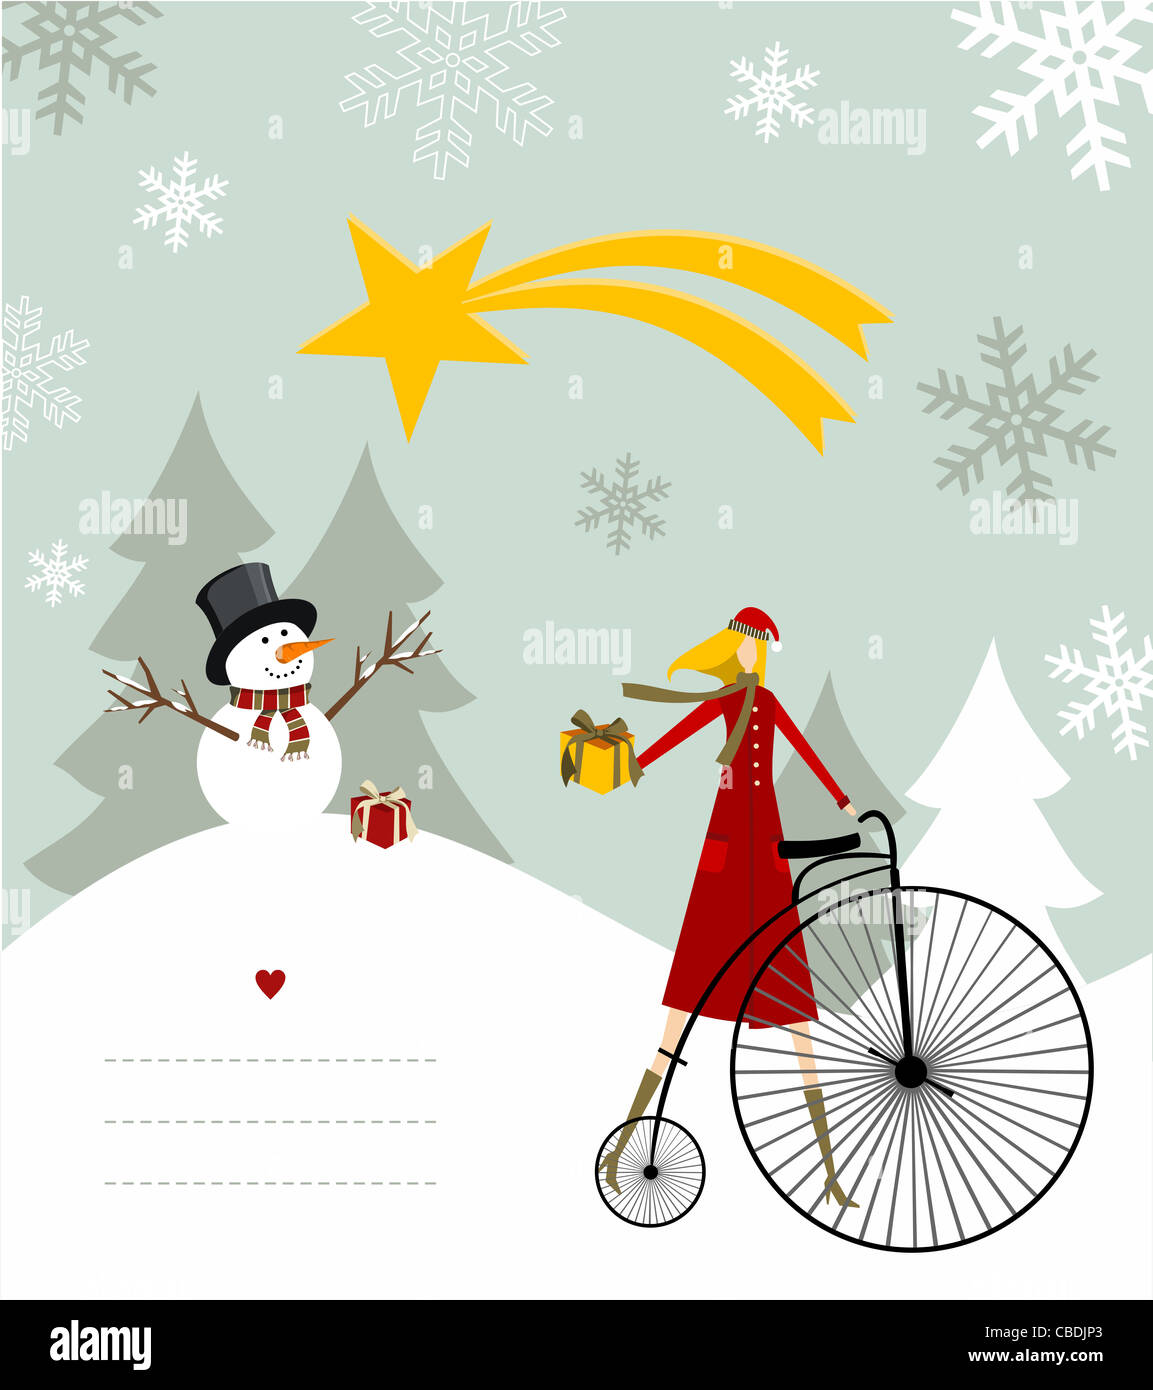 Snowman with star and gift on a bicycle illustration with blank lines to write on snowy background. Vector file Stock Photo